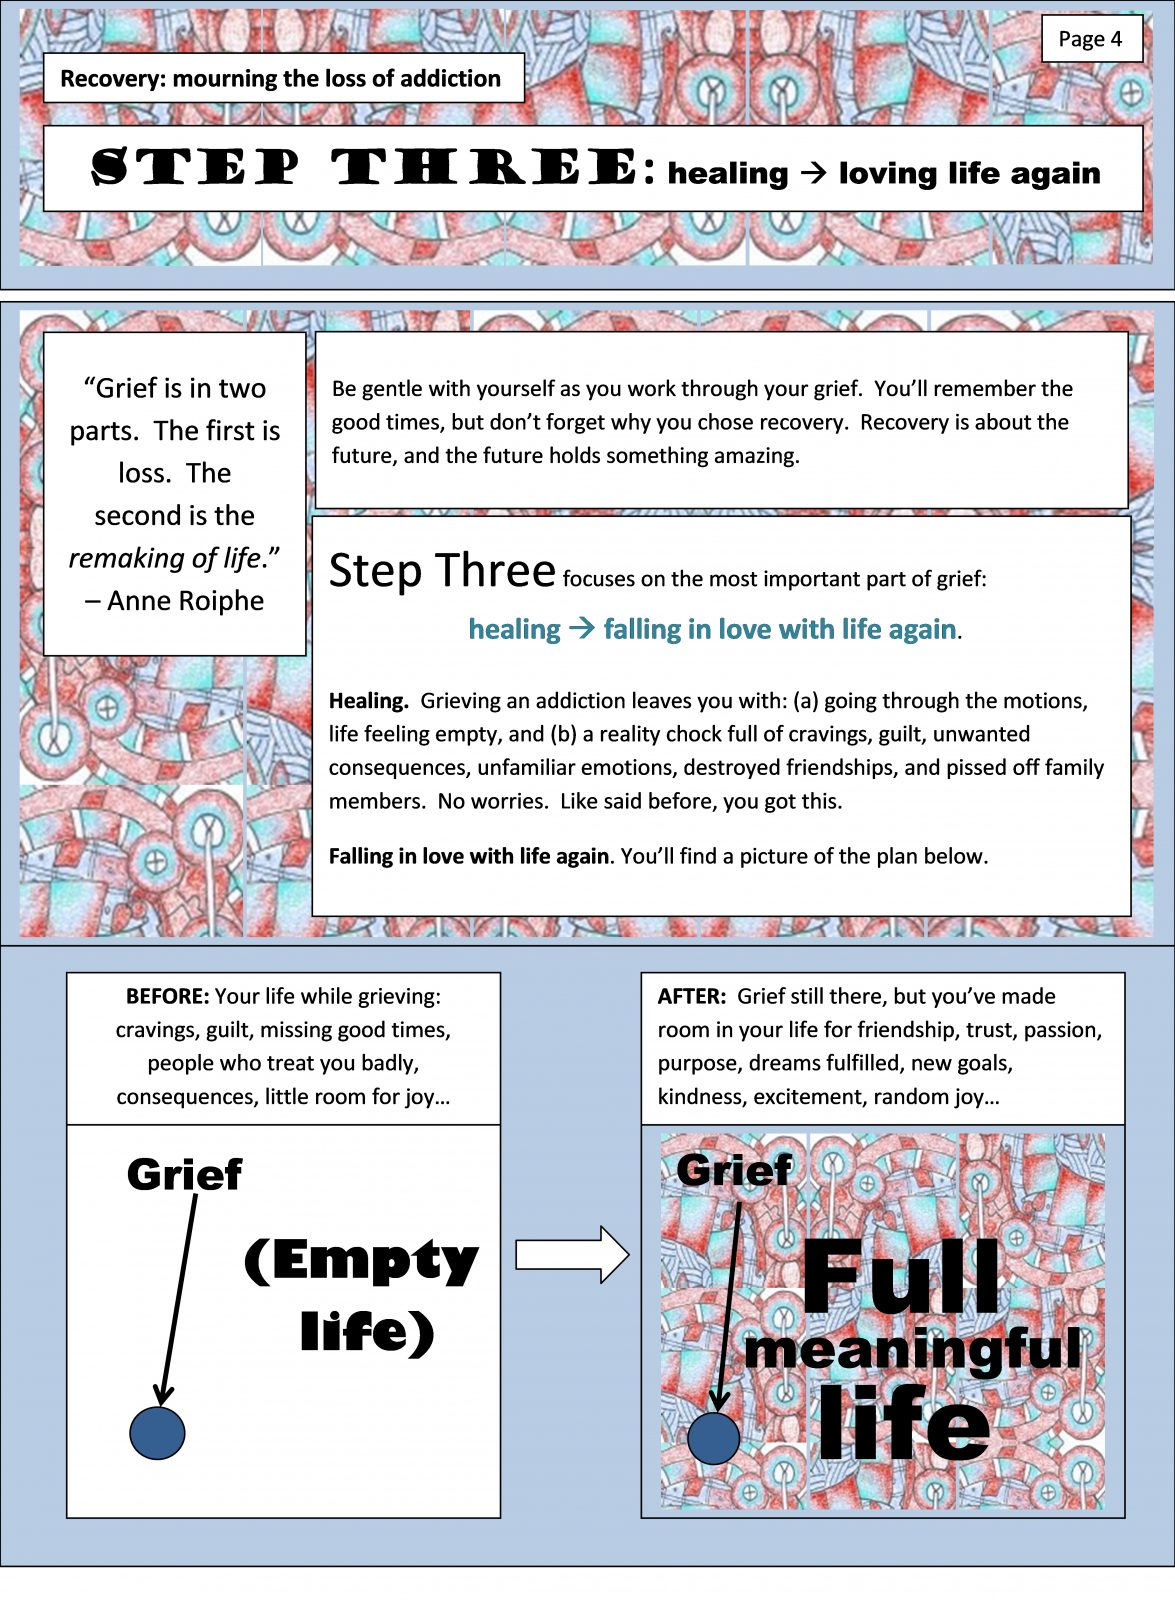 mourning addiction page 4